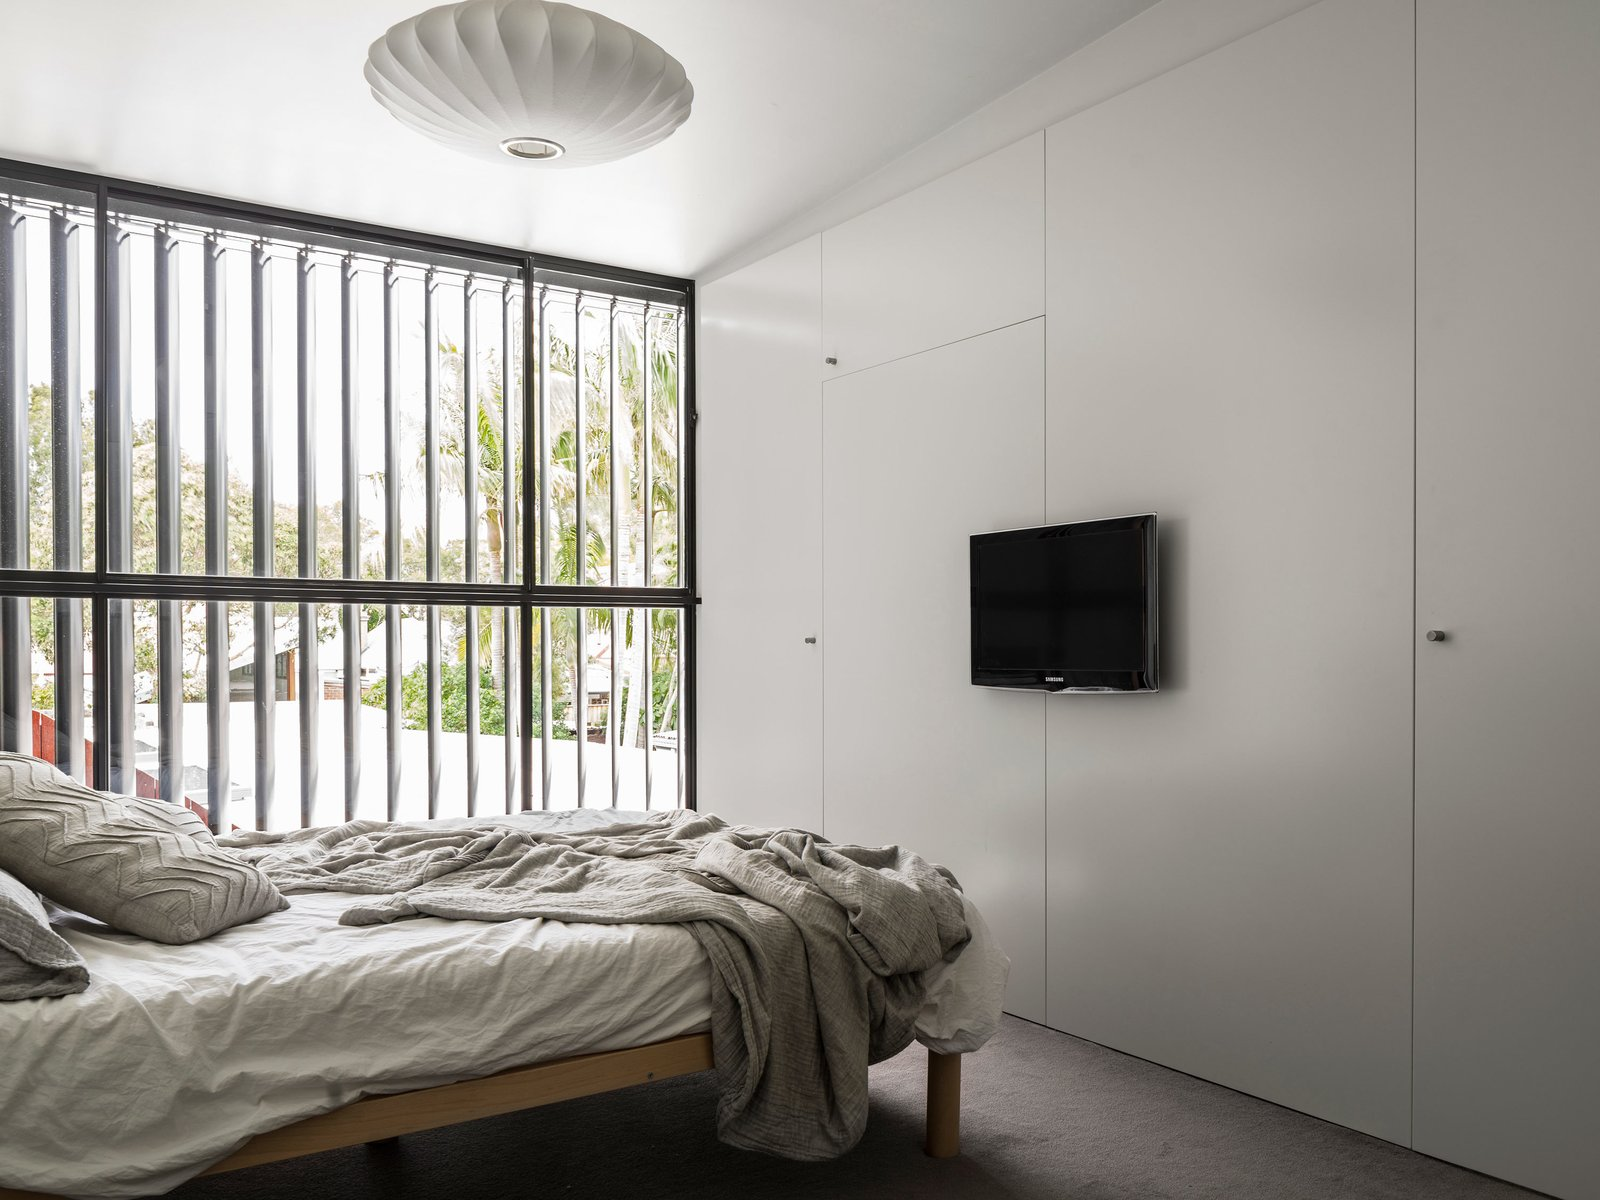 Bedroom, Bed, Pendant Lighting, and Carpet Floor Full height louvers are used throughout the house, opening the interior spaces up to the outdoors.  Photo 7 of 7 in Renovated 19th-Century Terrace House Merges with the Outdoors